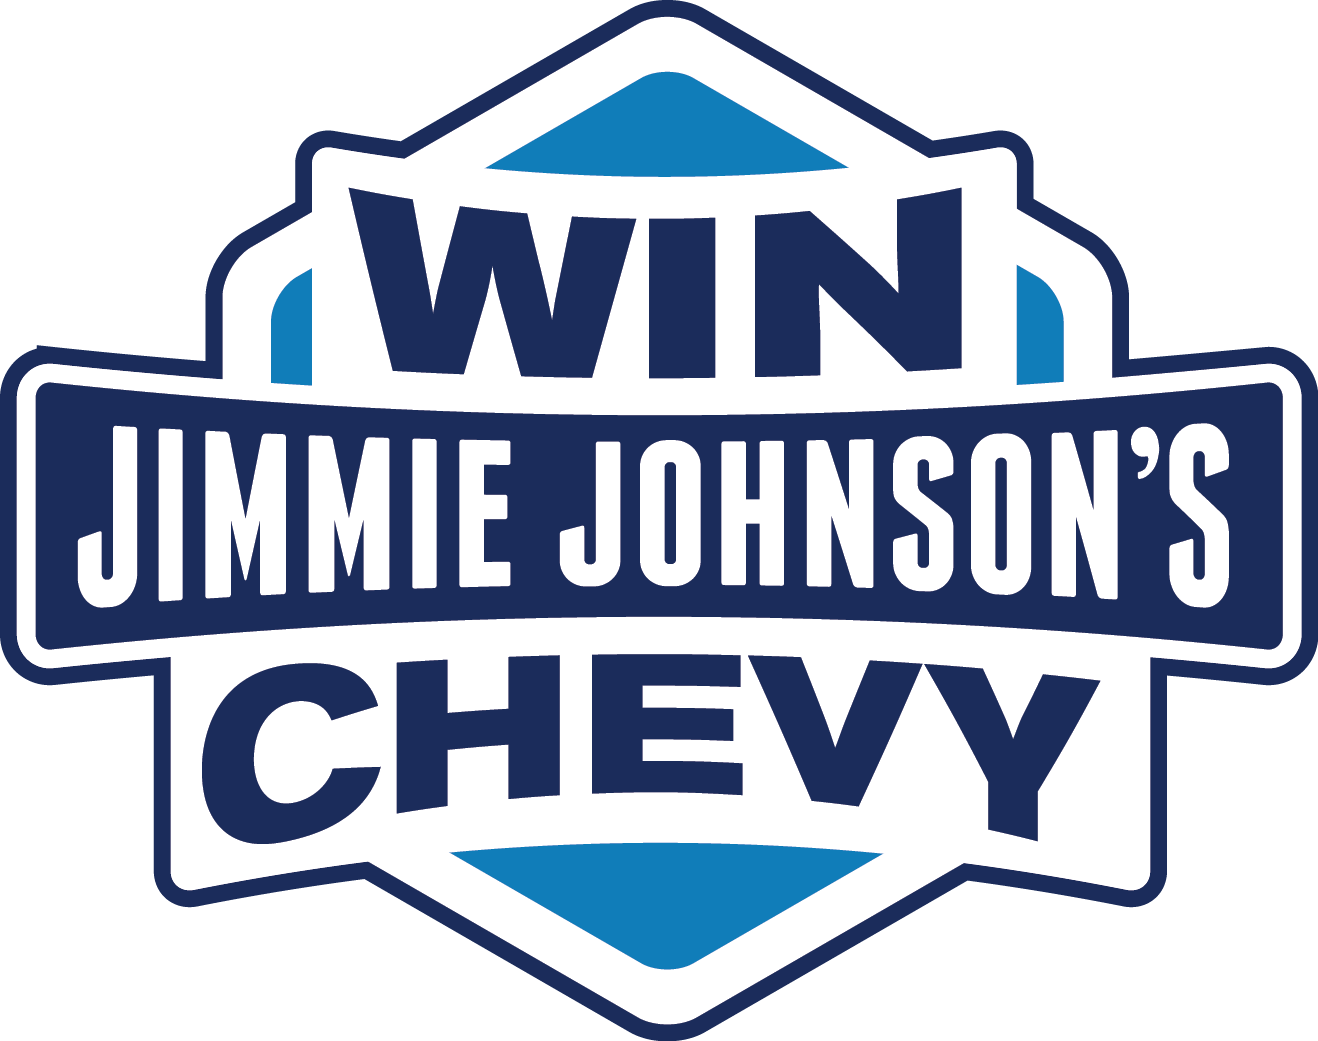 Win Jimmie Johnson's Chevy | Jimmie Johnson Foundation